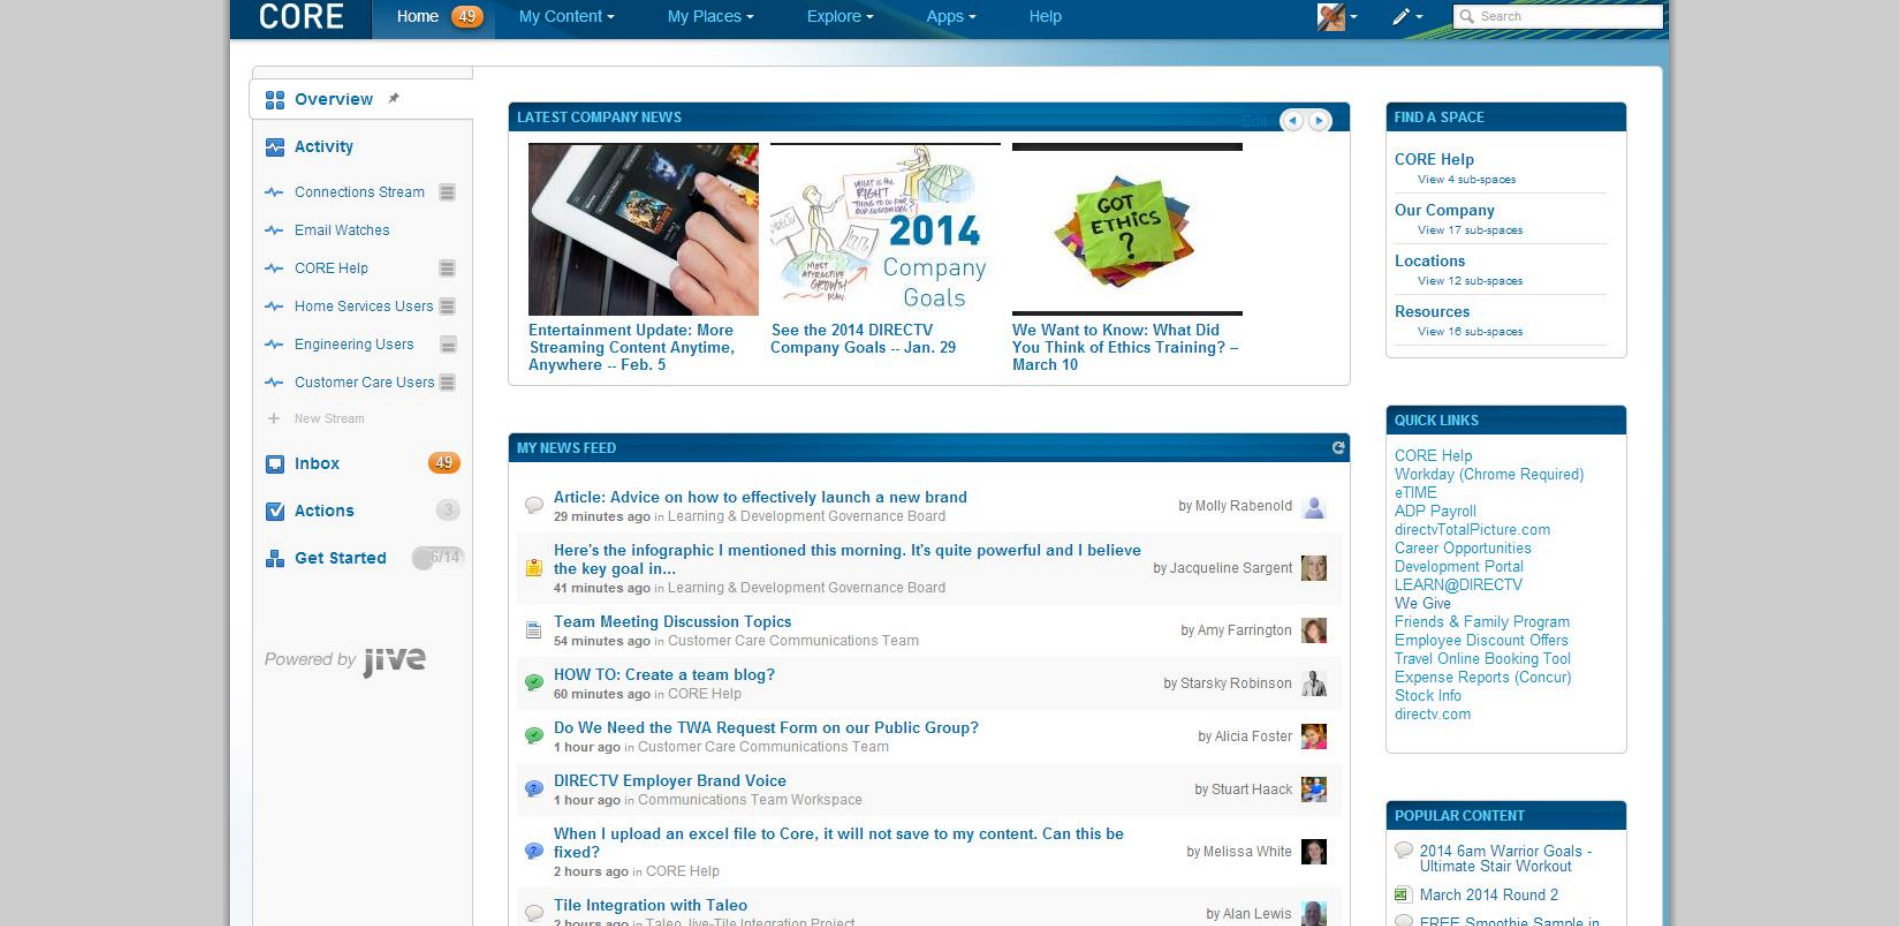 directv intranet home page may 2014 - Intranet Design Ideas